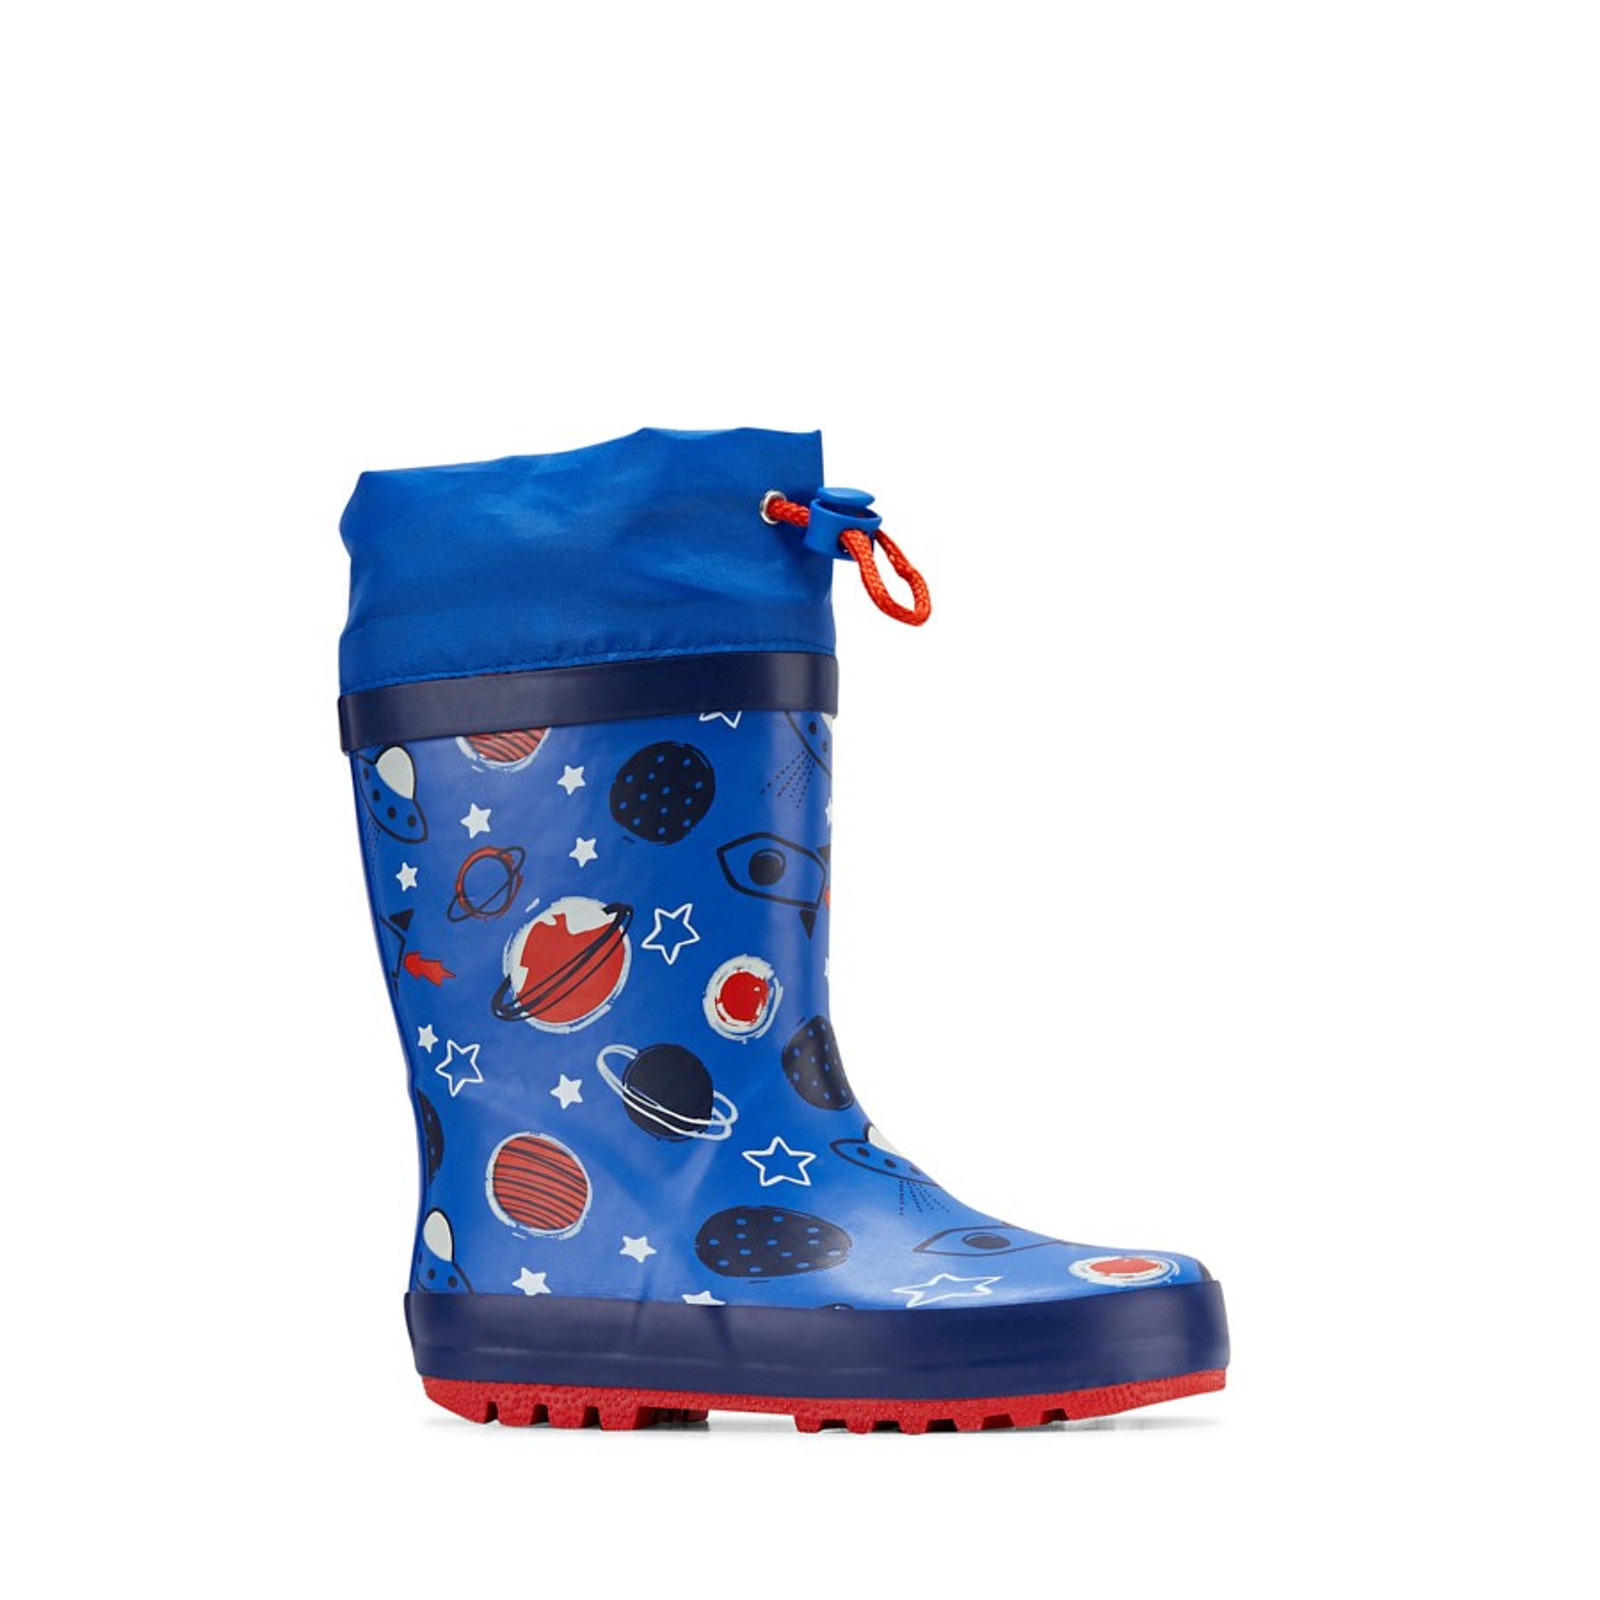 Clarks UnisexChildren PUDDLES Blue/Red Planets